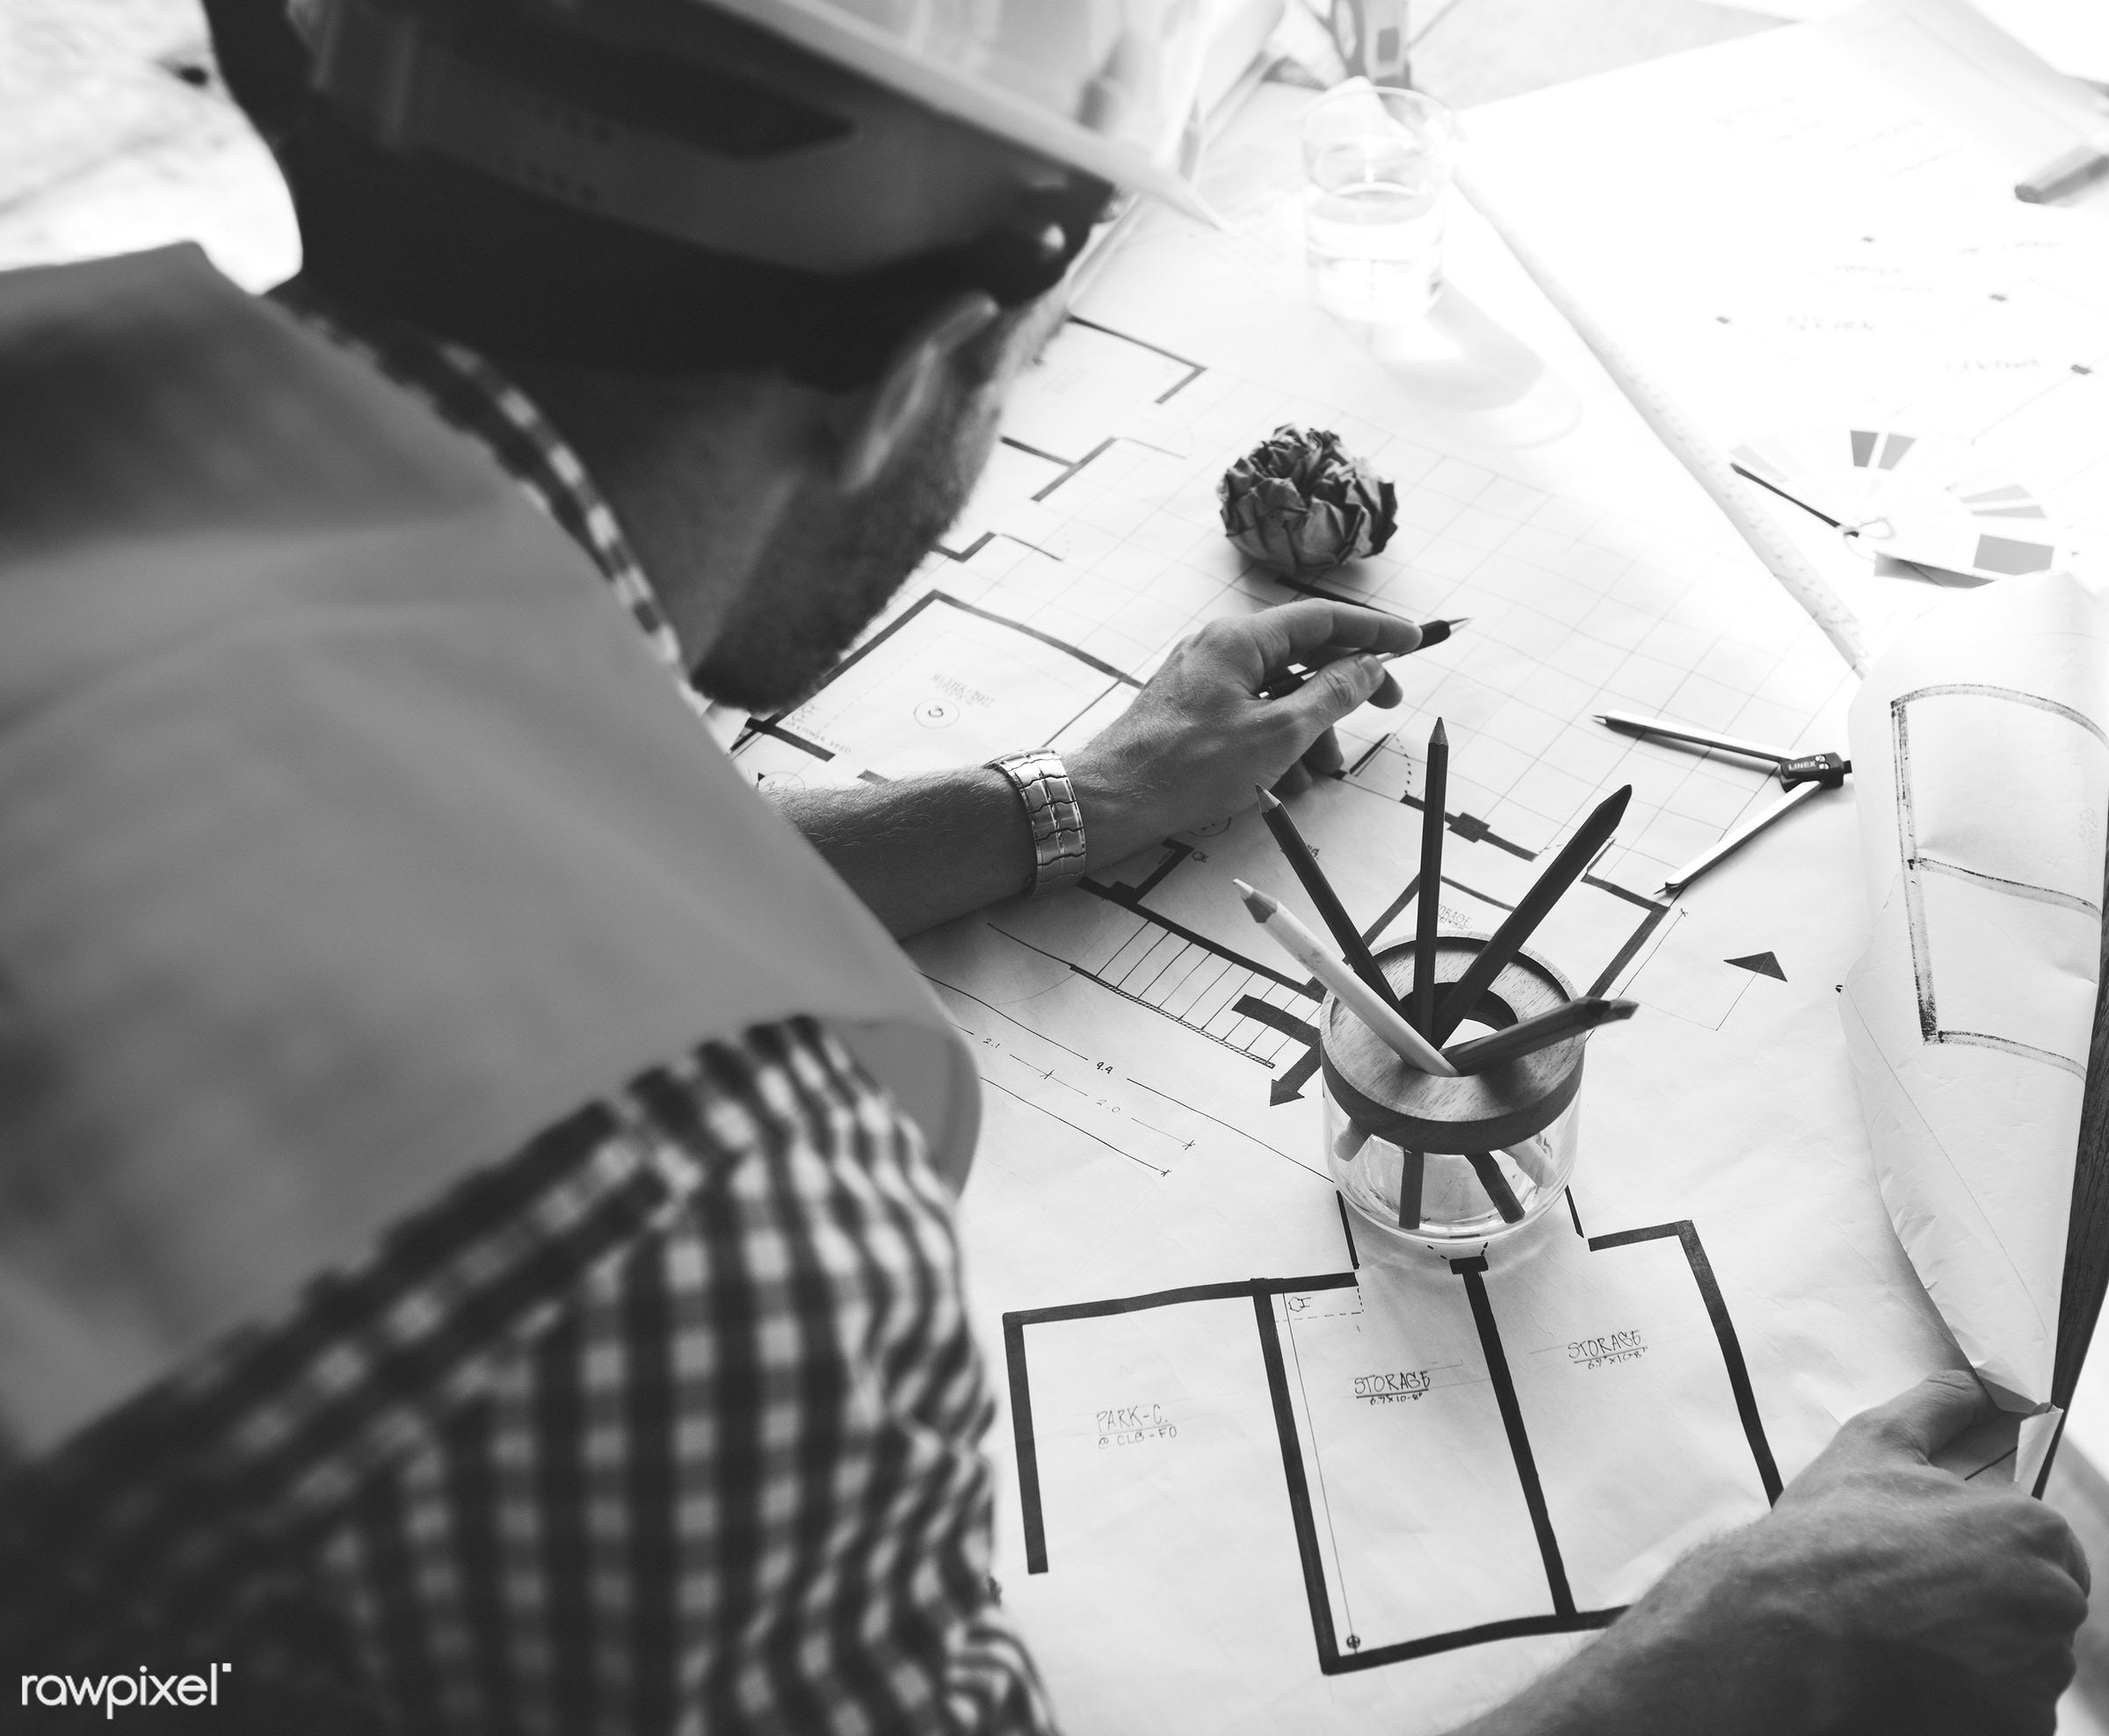 architect, blueprint, brainstorming, business, busy, construction, construction worker, creativity, design, draft, drawing,...